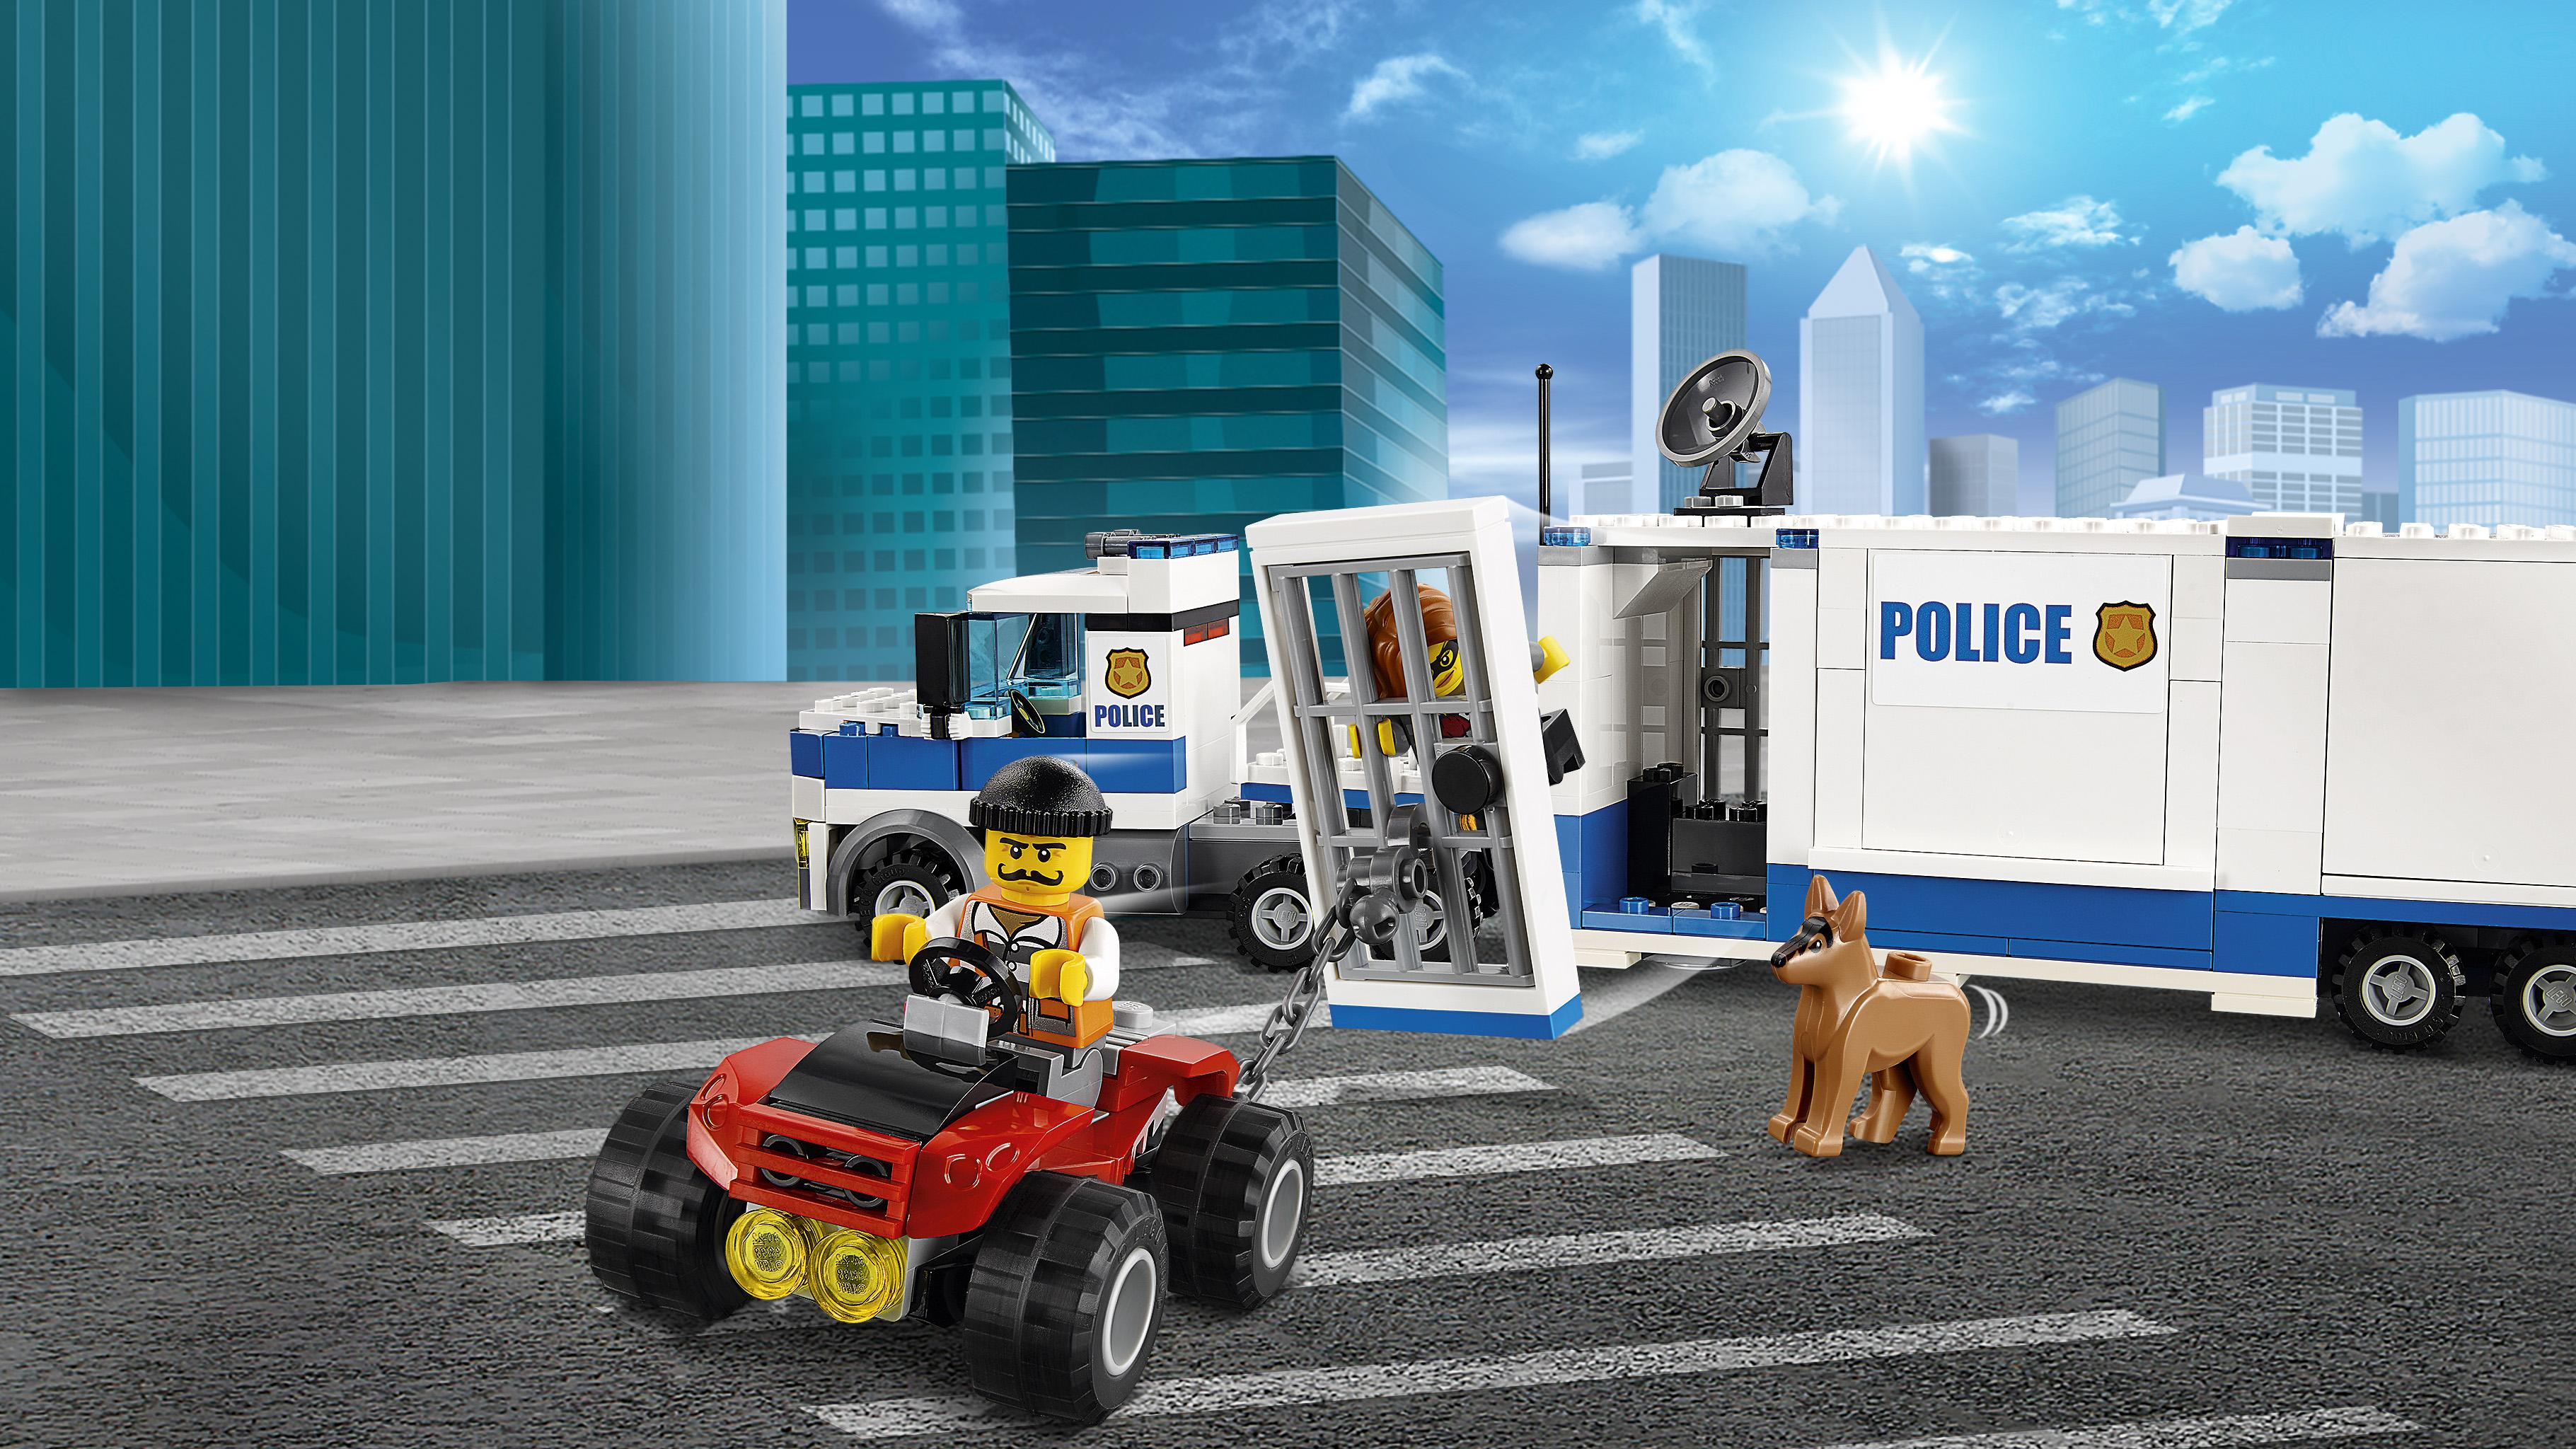 lego city police mobile command center 60139 building toy toys games. Black Bedroom Furniture Sets. Home Design Ideas